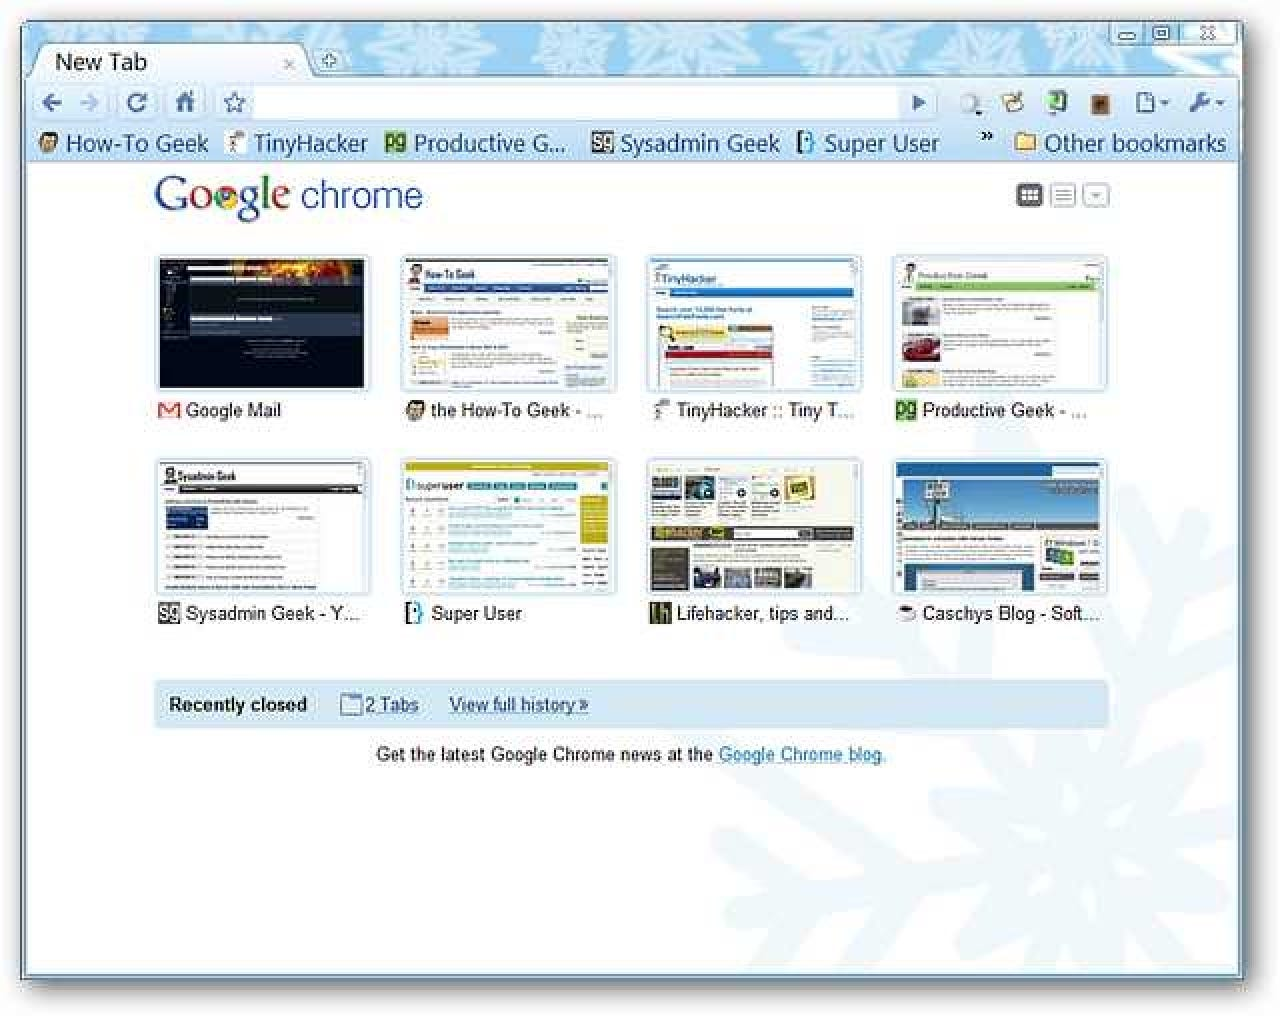 Turn Chrome's New Tab Page Into A Google Tasks Page